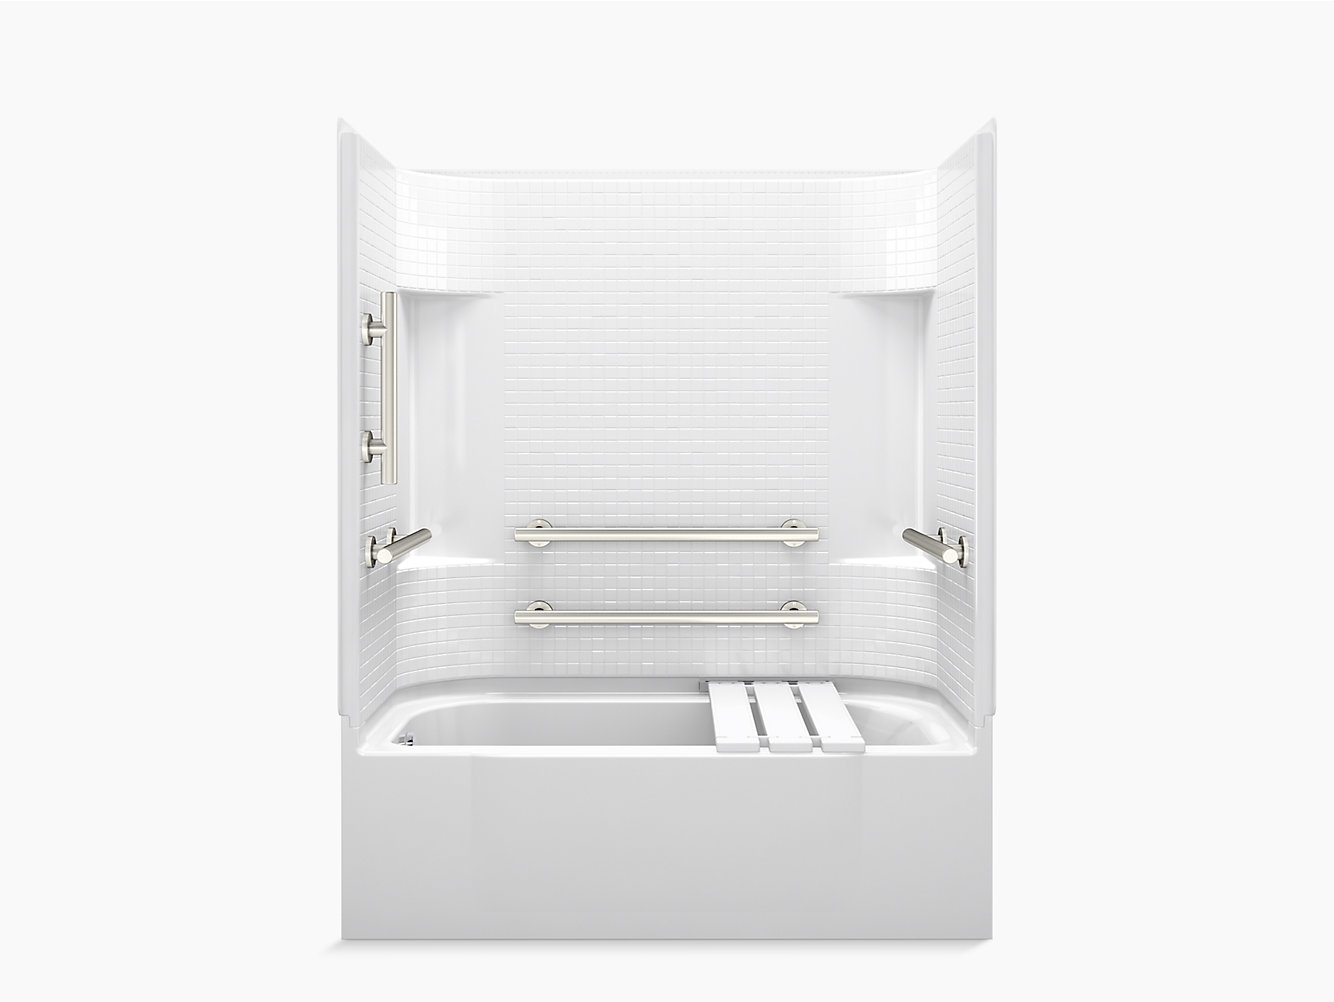 "Accord Series 7114, 60"" x 30"" ADA Bath/Shower With Grab Bars and ..."